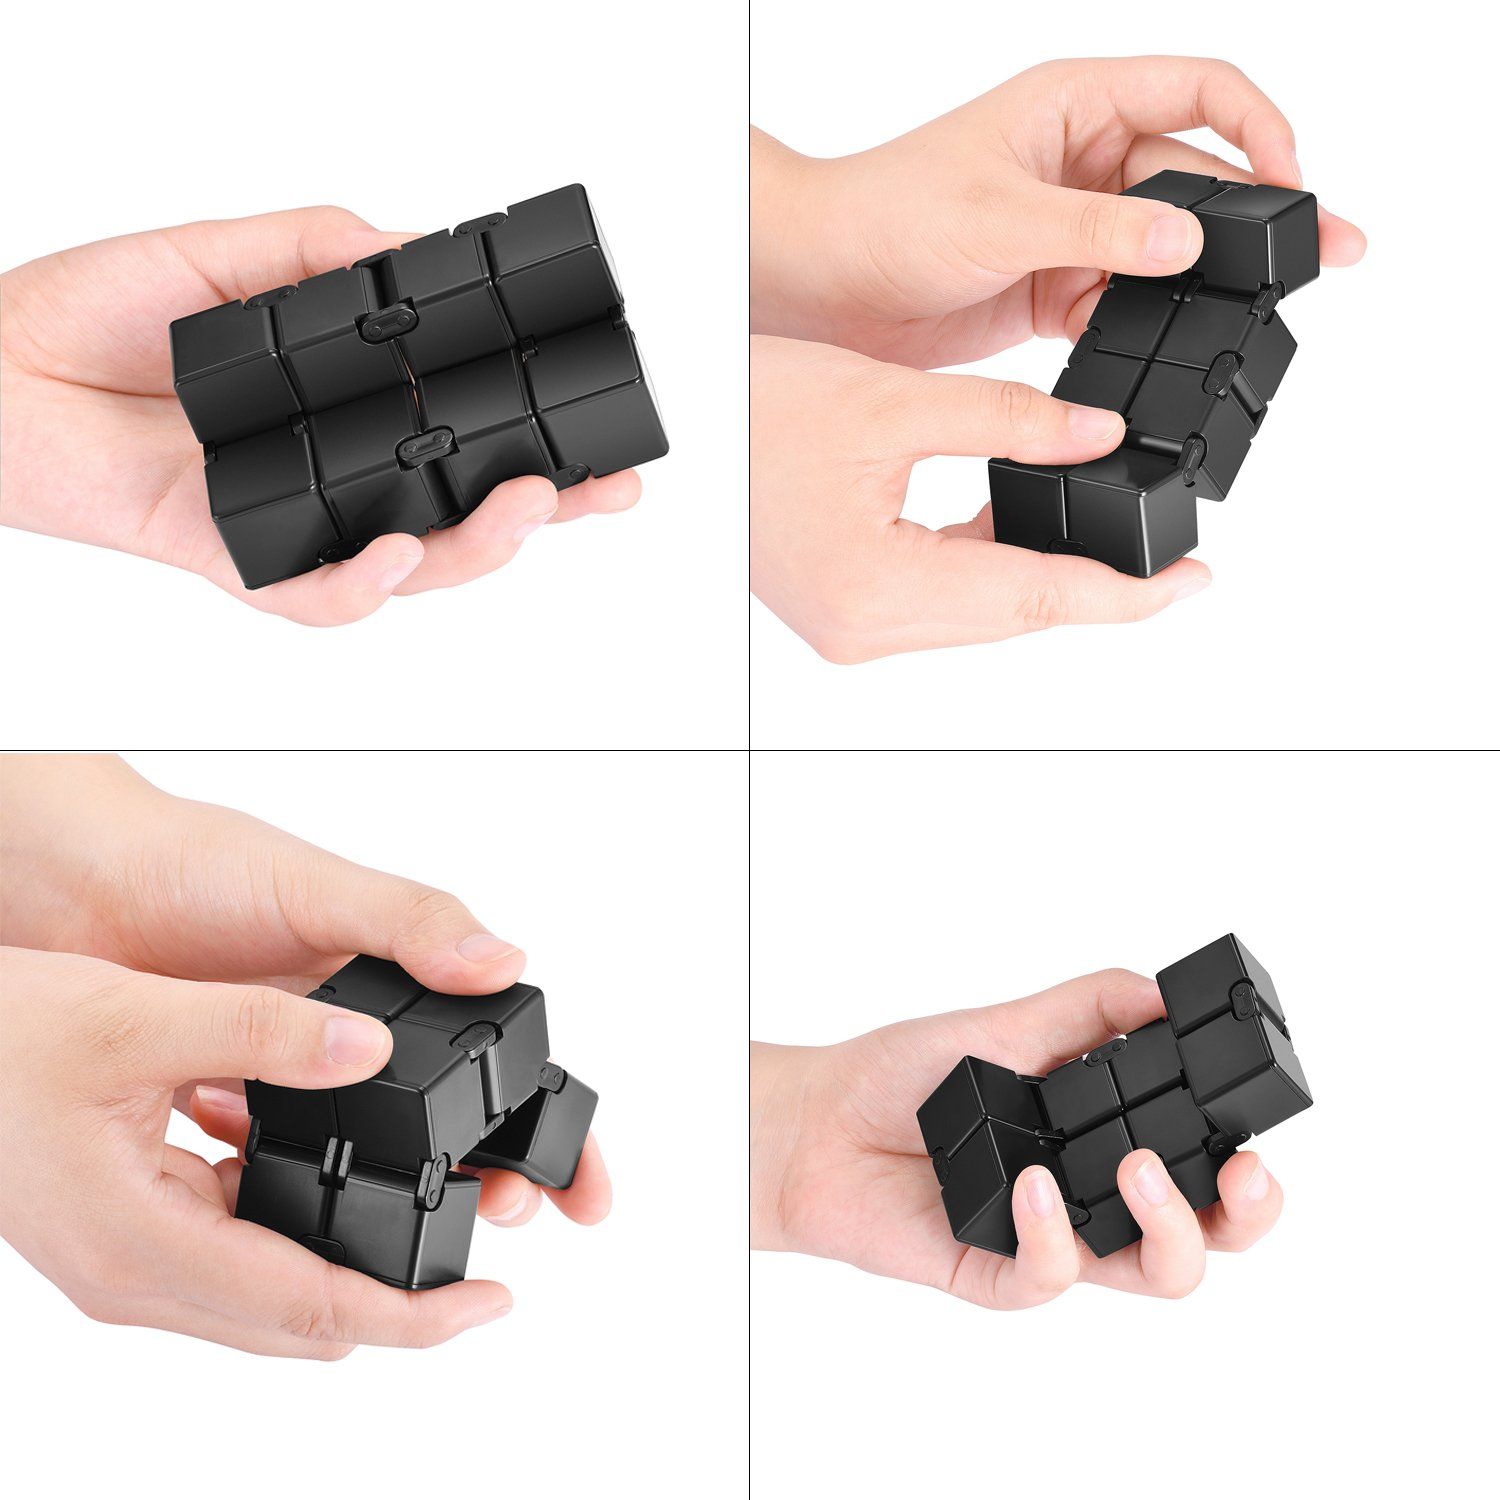 Ganowo Infinity Cube Fidget Toy for Kids and Adults, Fidget Cube Cool Mini Magic Cube Gadget Spinner for Stress and Anxiety Relief and Kill Time (Red&Black)